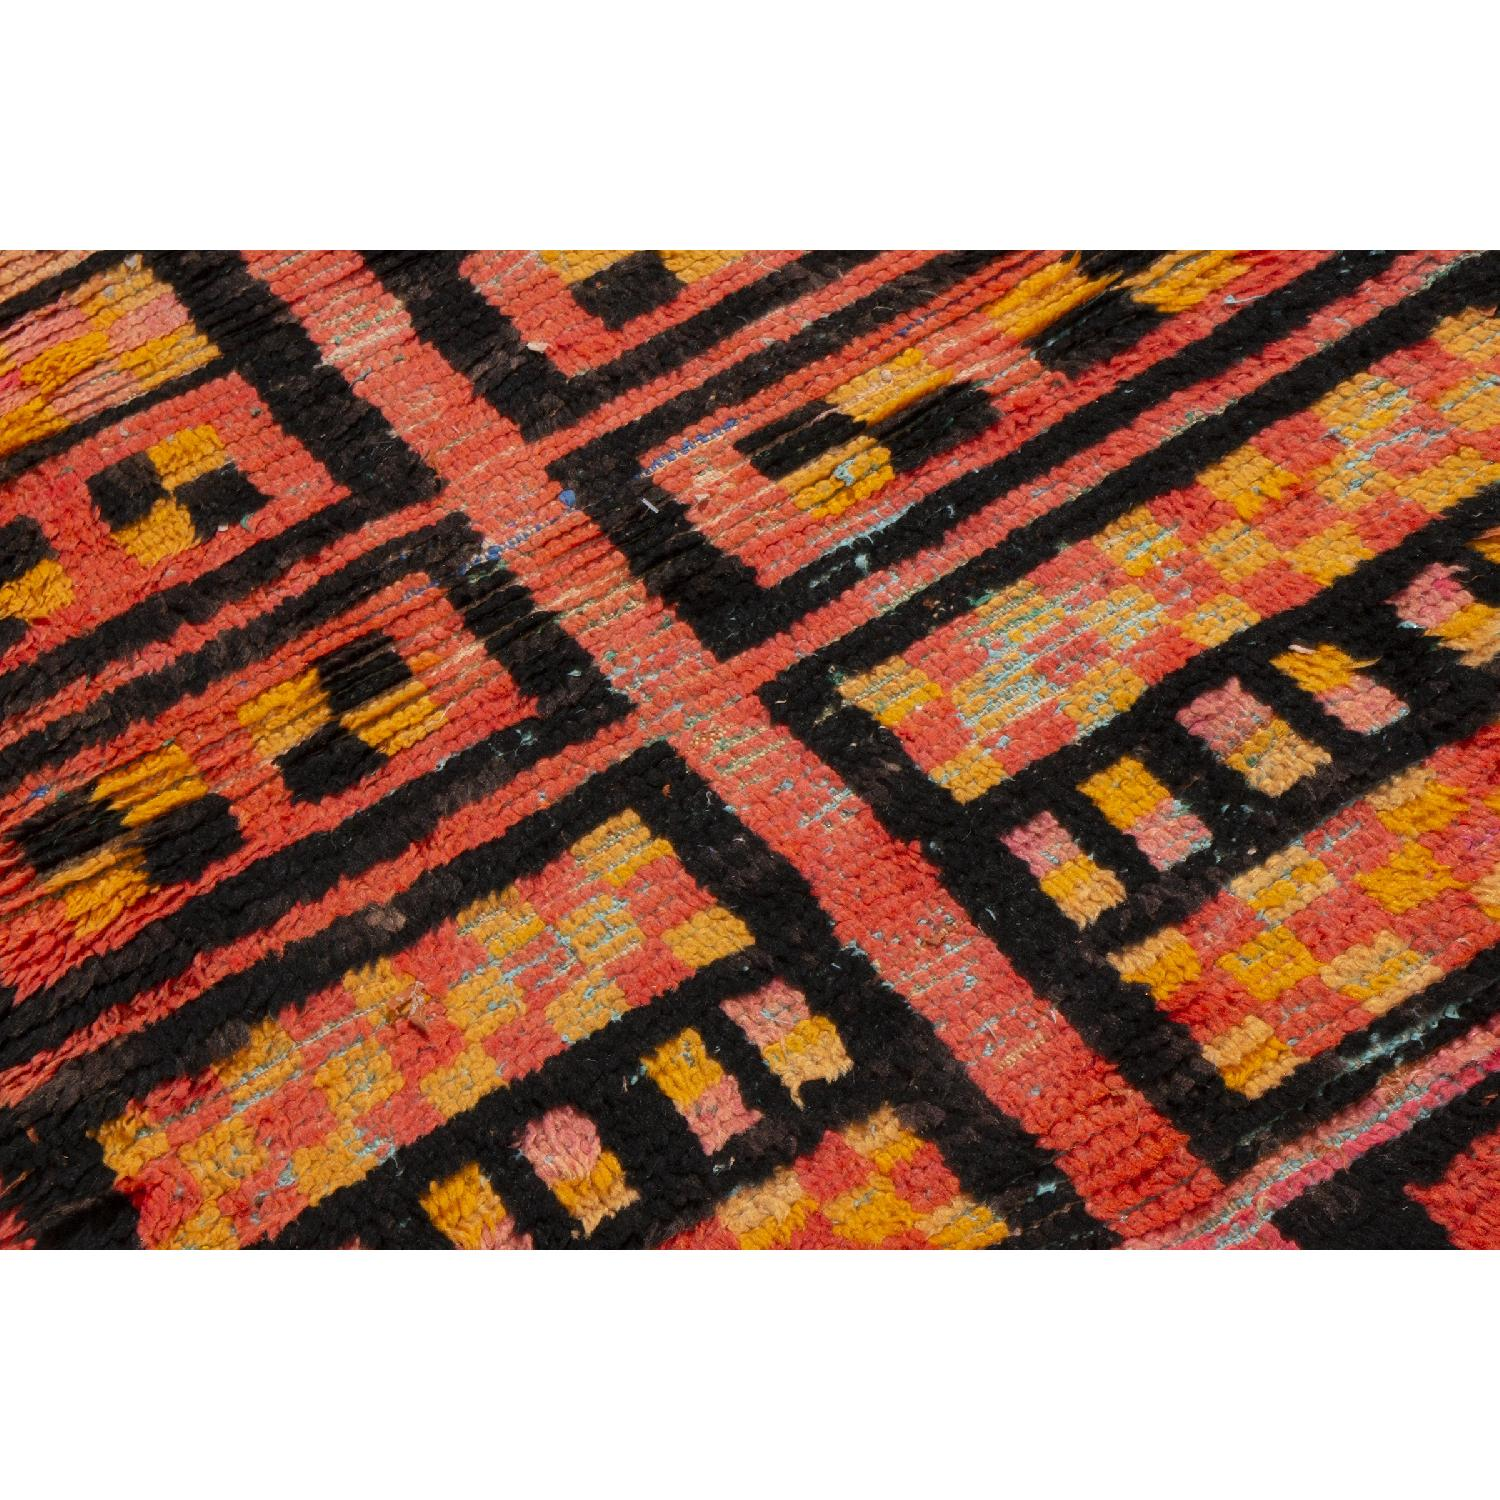 Radiant Transitional Moroccan Geometric Rug-1